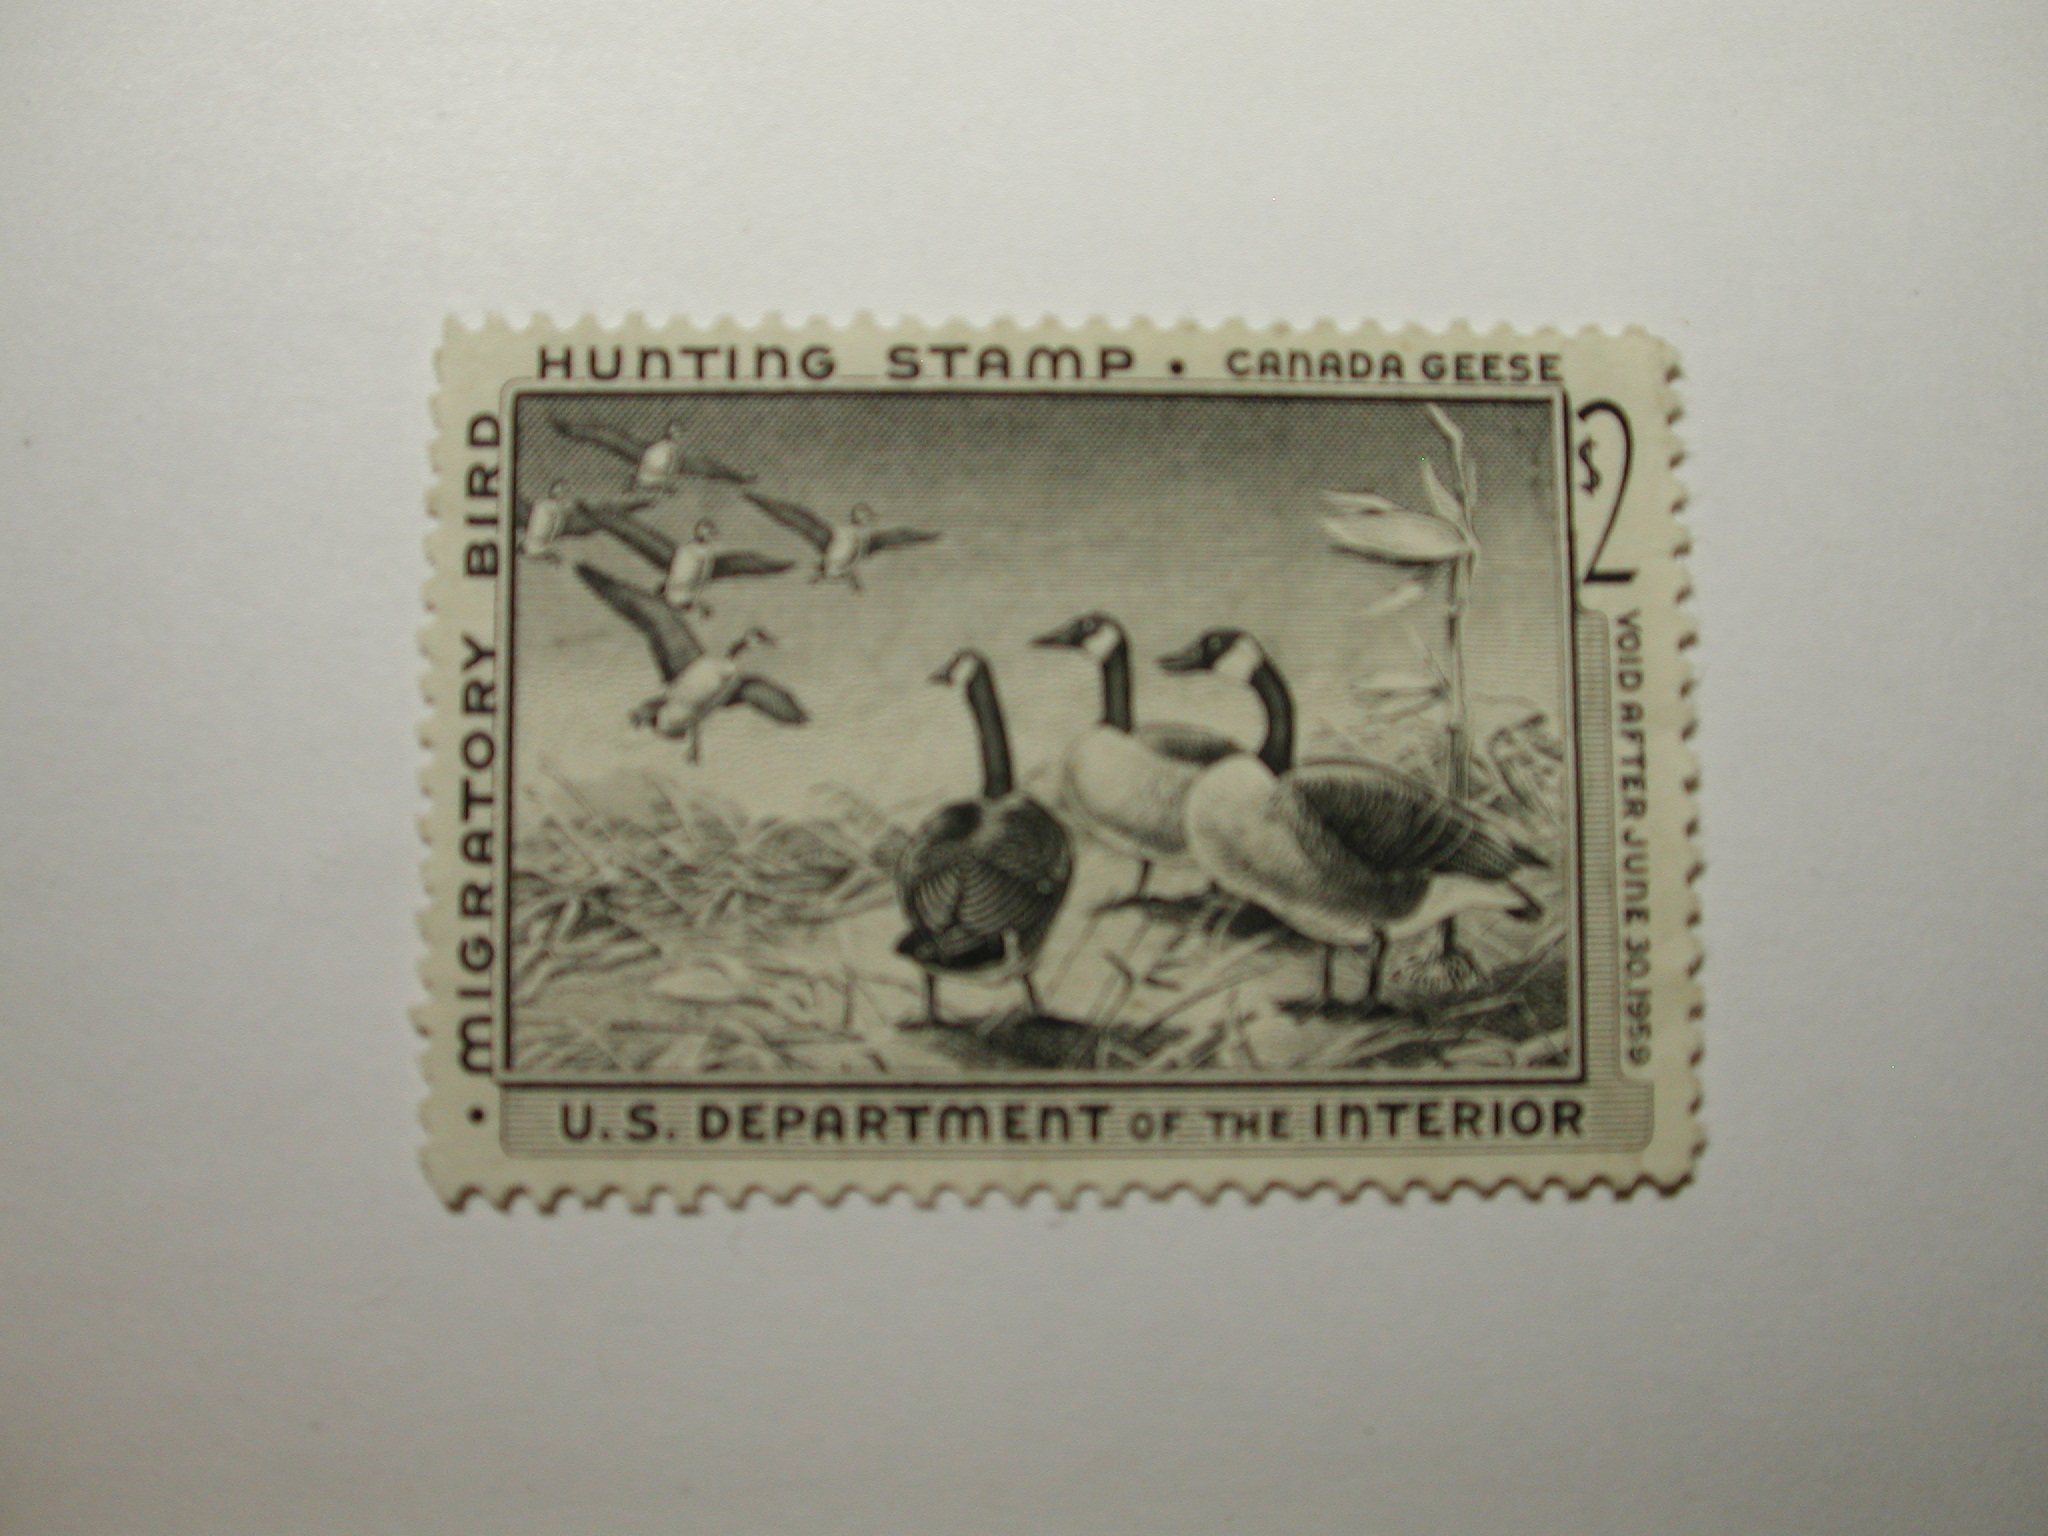 U.S. Stamp Scott #RW25 US Department of Agriculture $2 Migratory Bird Hunting Stamp - Canada Geese, No Gum